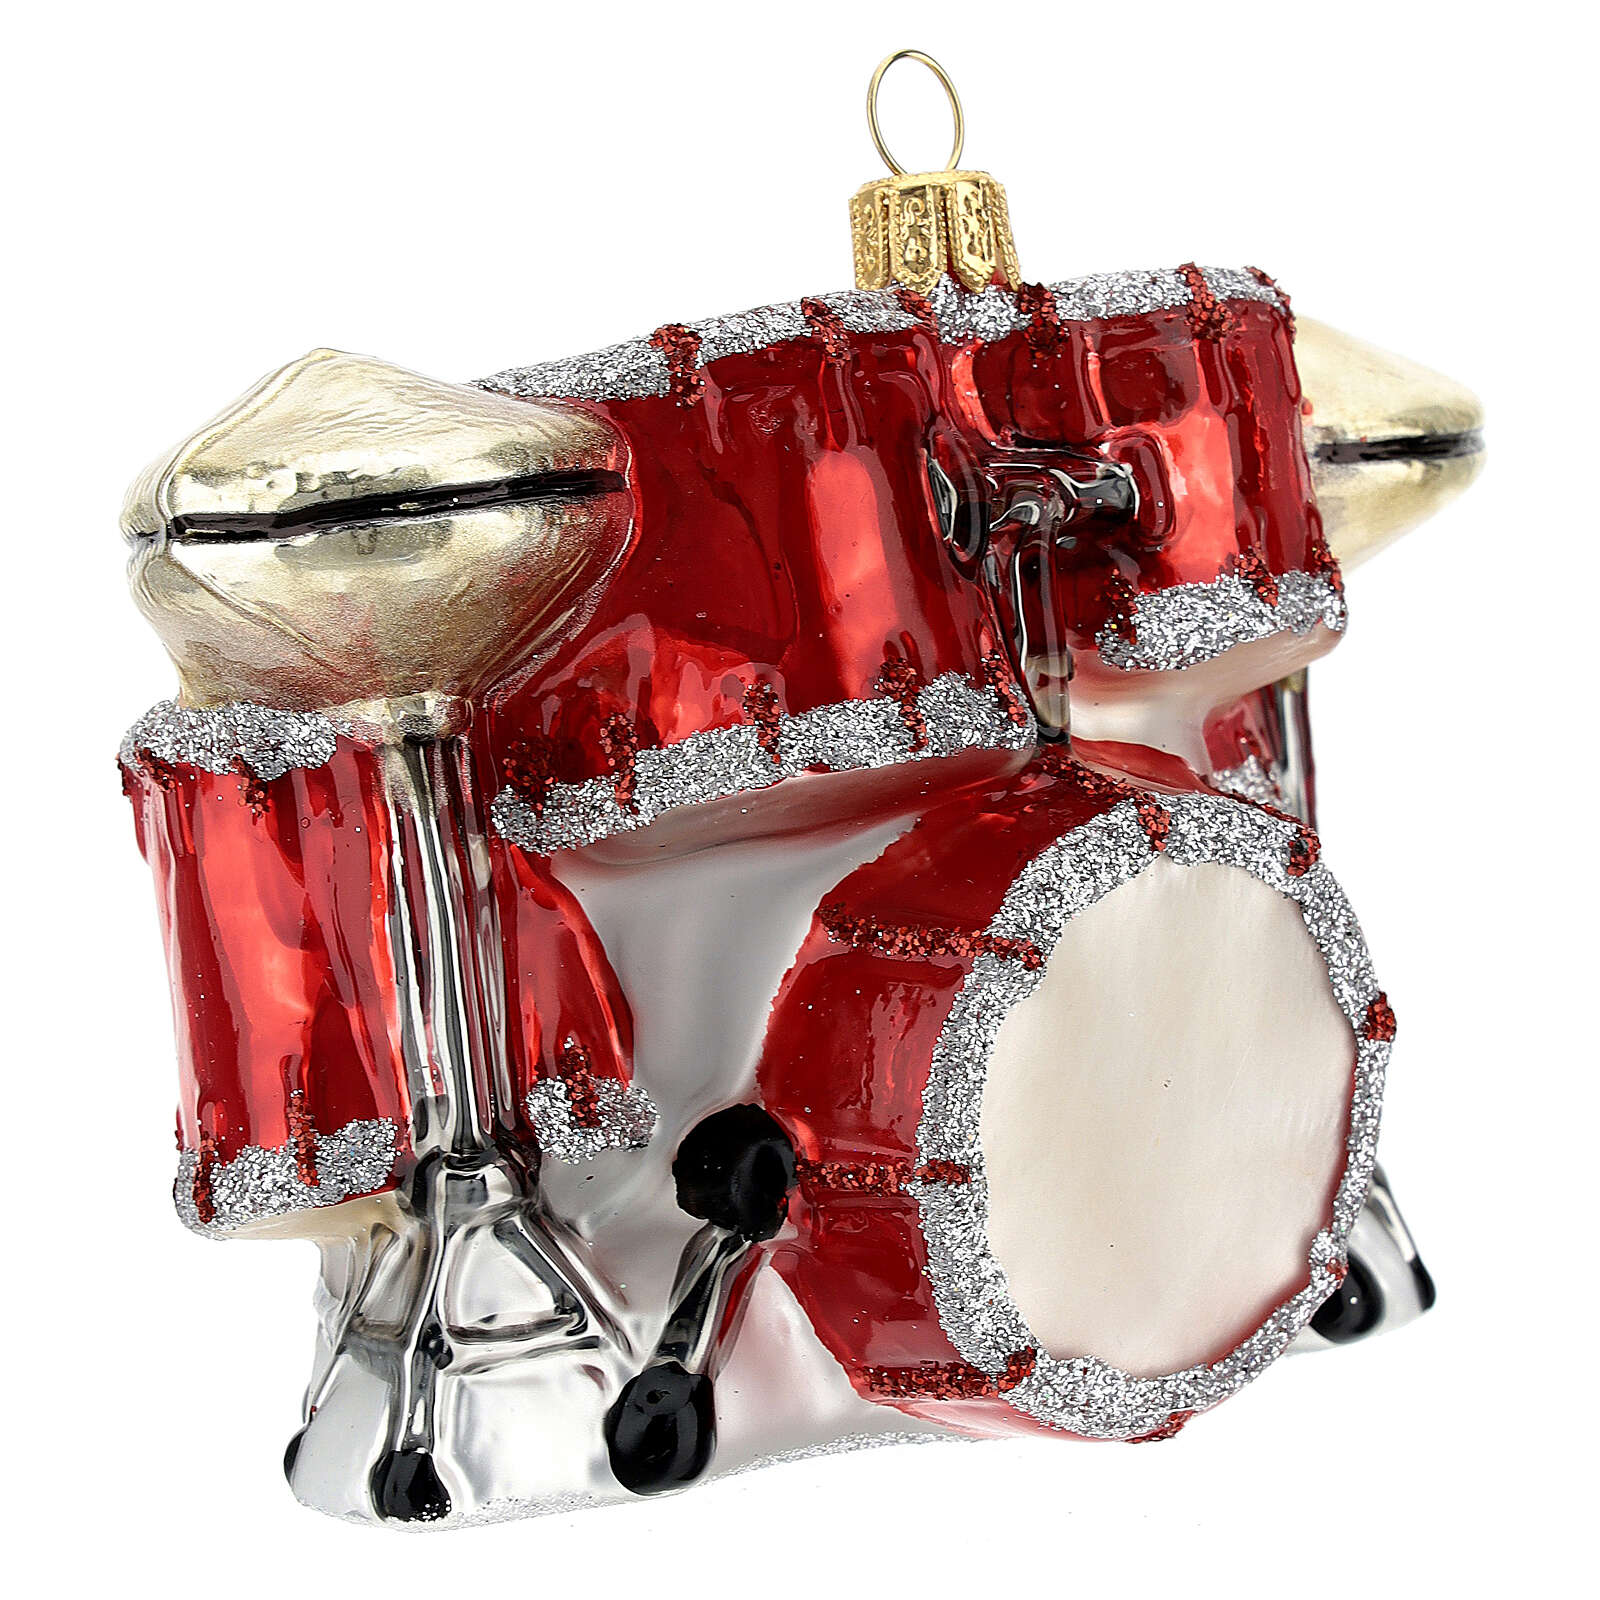 Blown glass Christmas ornament, drum set 4